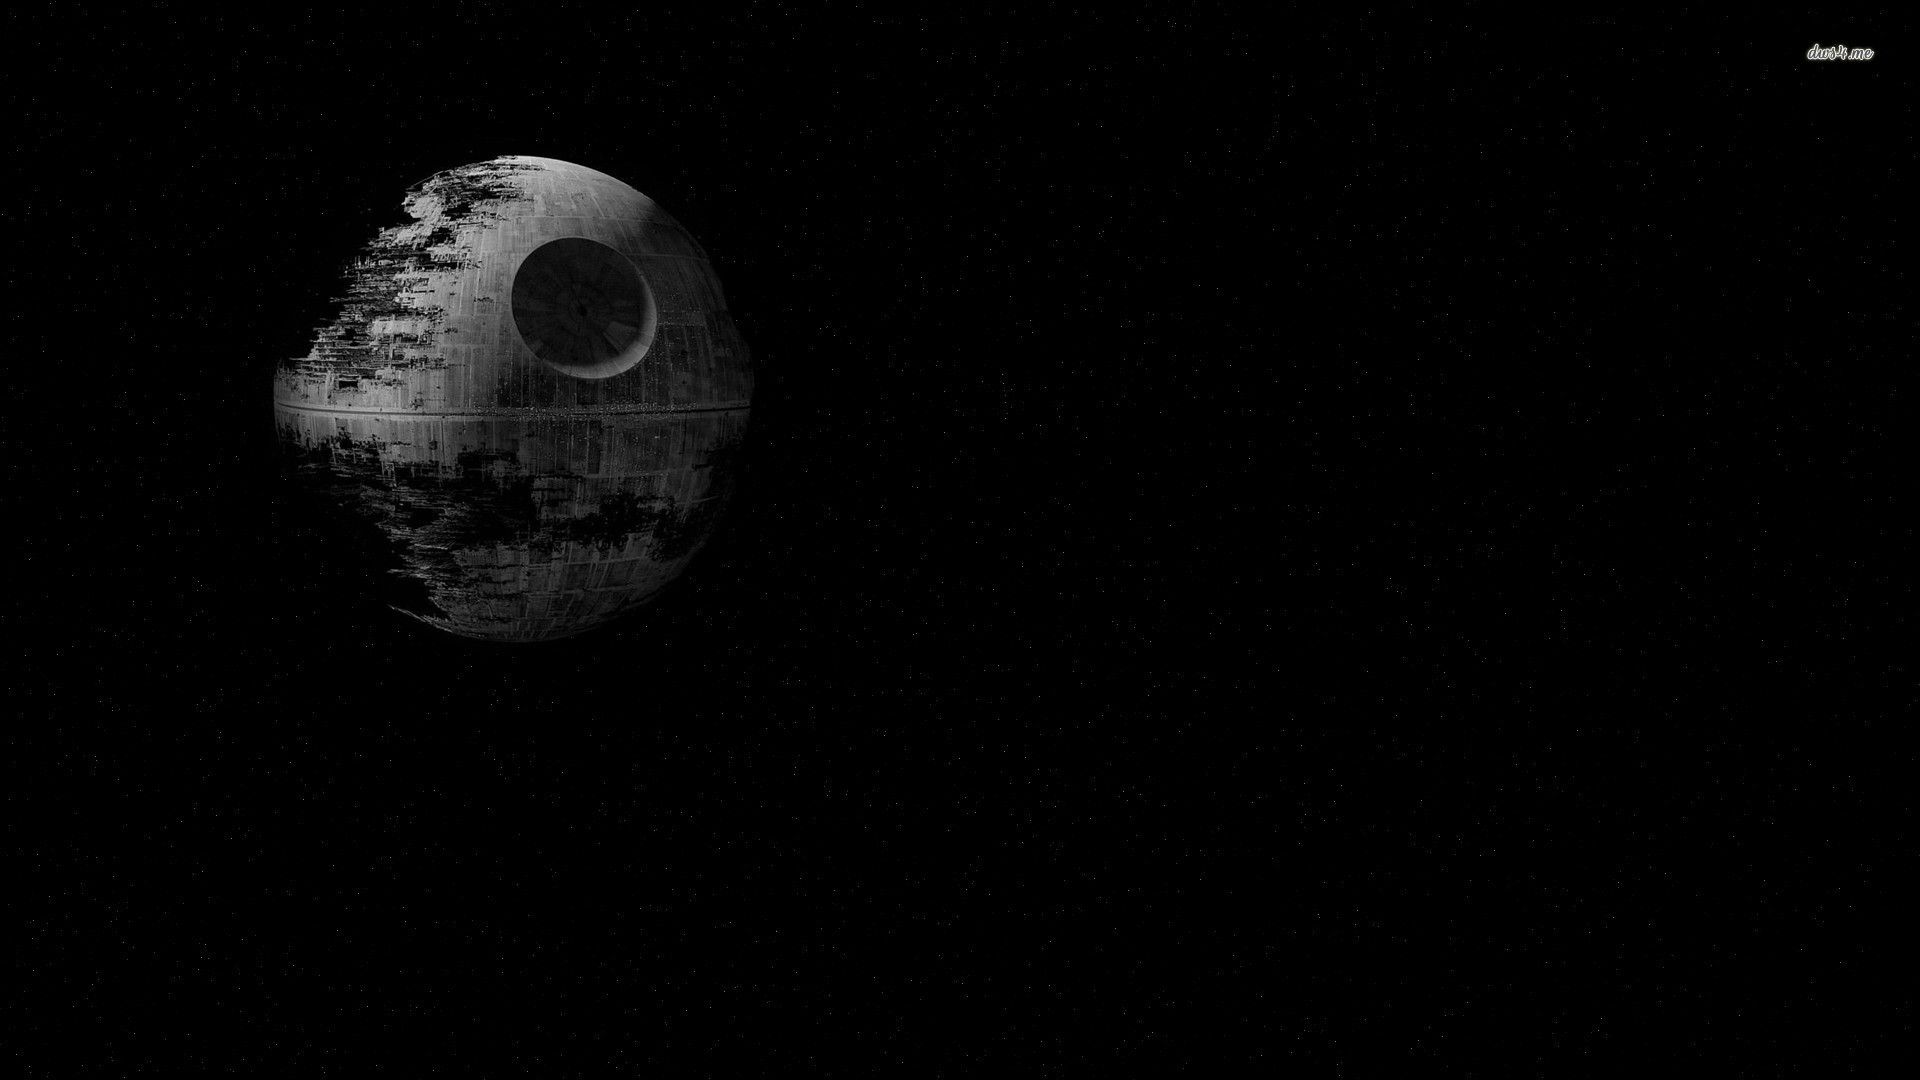 Death Star Desktop Wallpaper